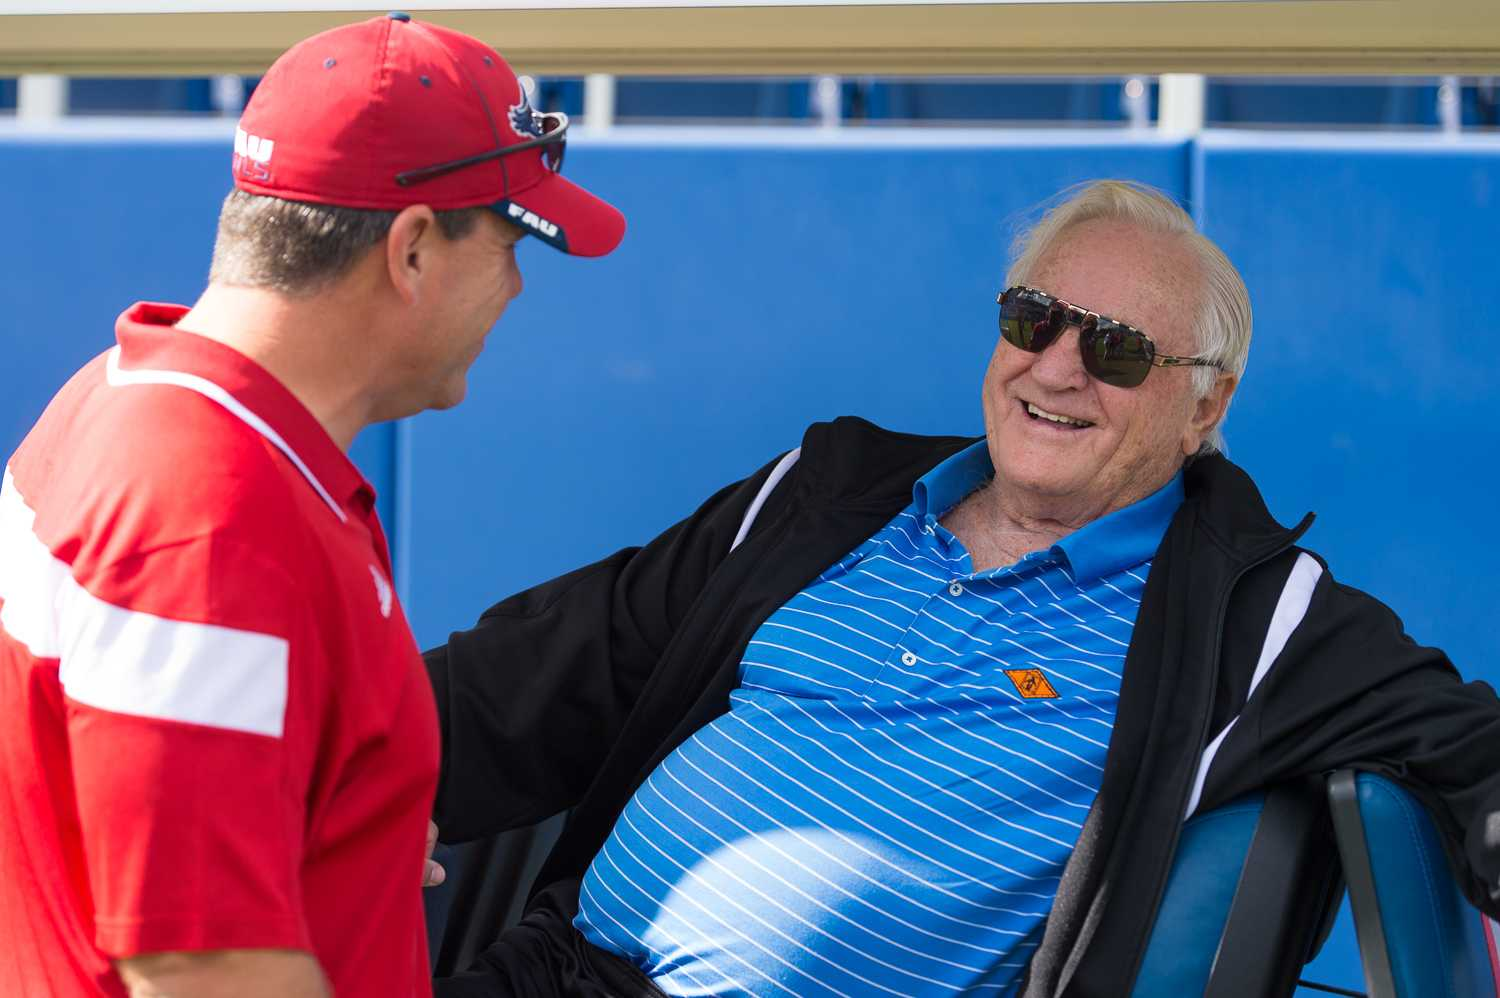 Pro Football Hall of Famer Don Shula and FAU head coach Charlie Partridge meet on the field before the game against Old Dominion.